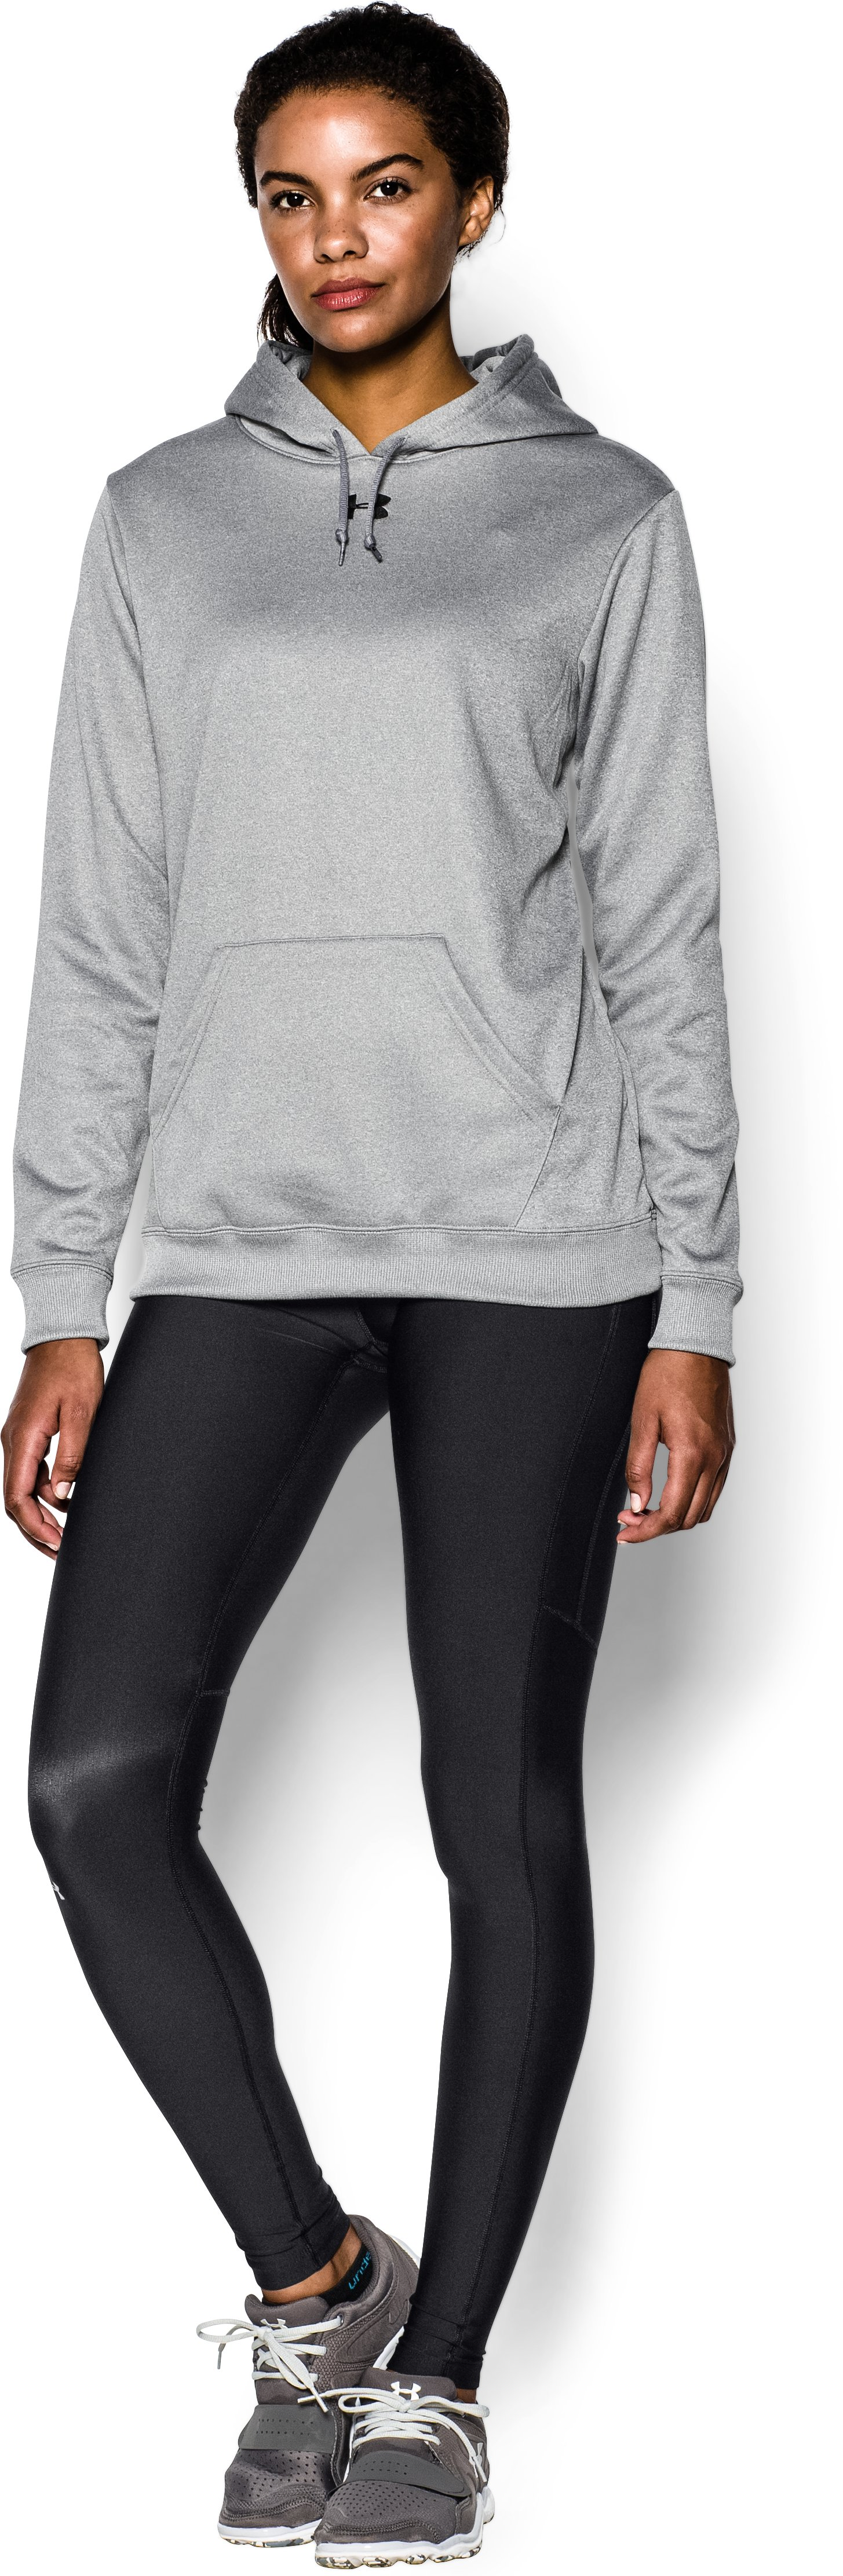 Women's Armour® Fleece Team Hoodie, True Gray Heather, zoomed image